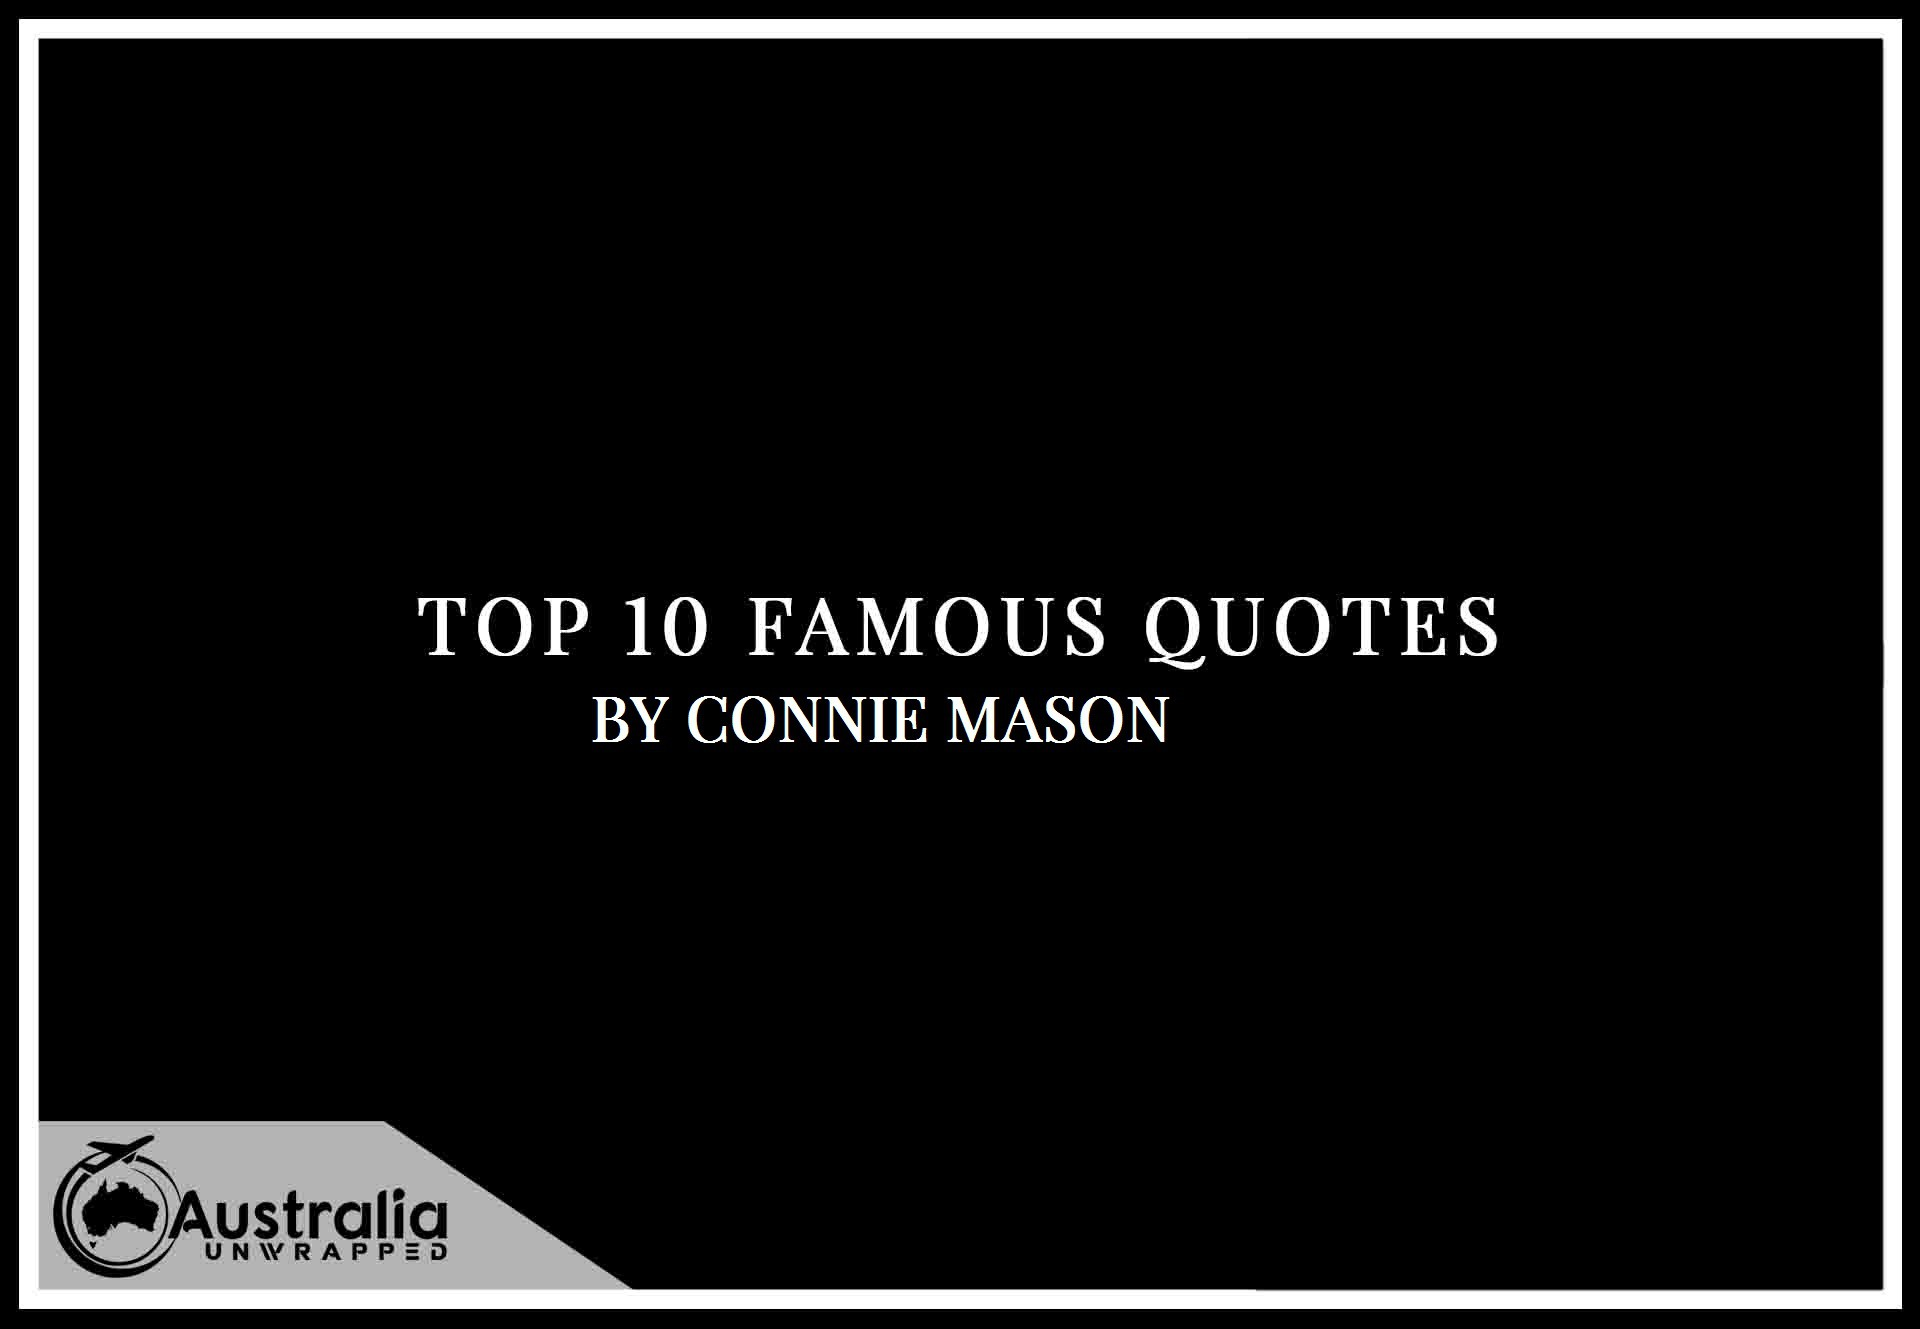 Connie Mason's Top 10 Popular and Famous Quotes